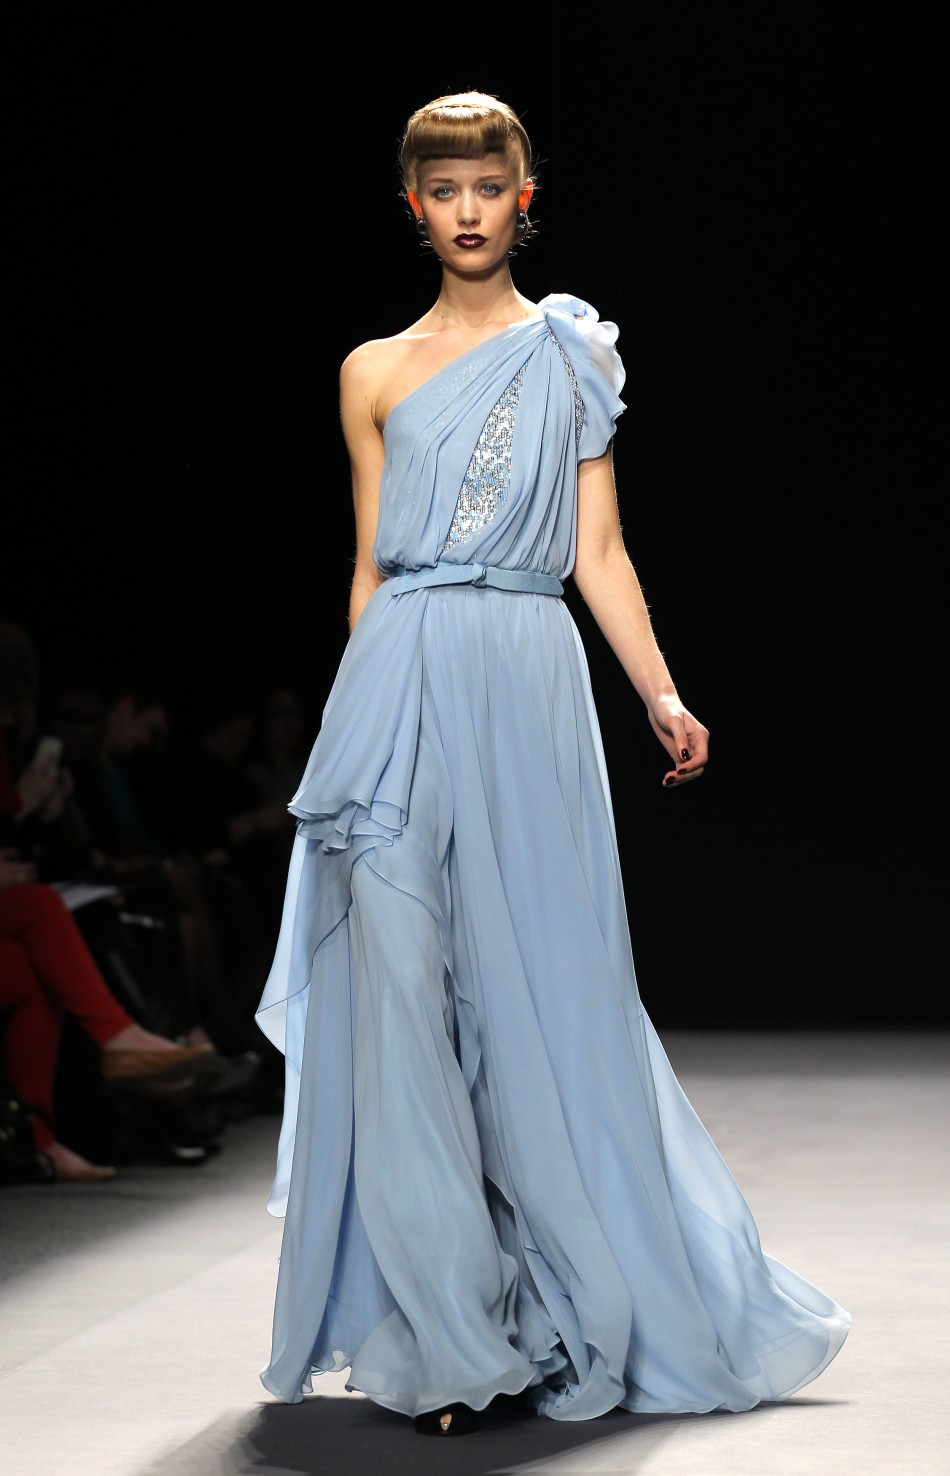 Jenny Packham Autumn/Winter 2012